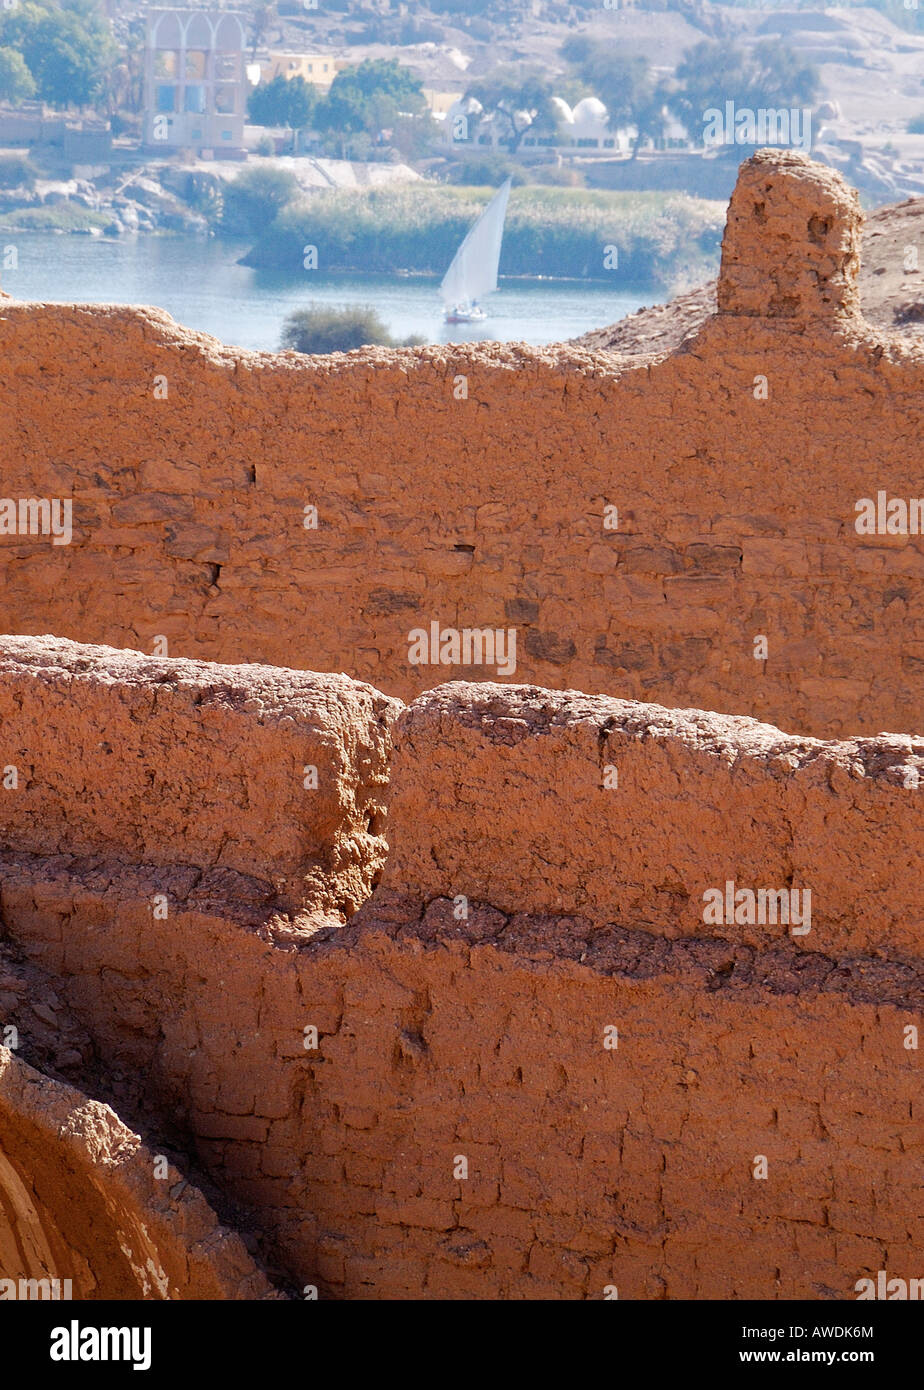 View from the ruins of the Monastery of St Simeon towards  the  river Nile at  Aswan  Egypt - Stock Image